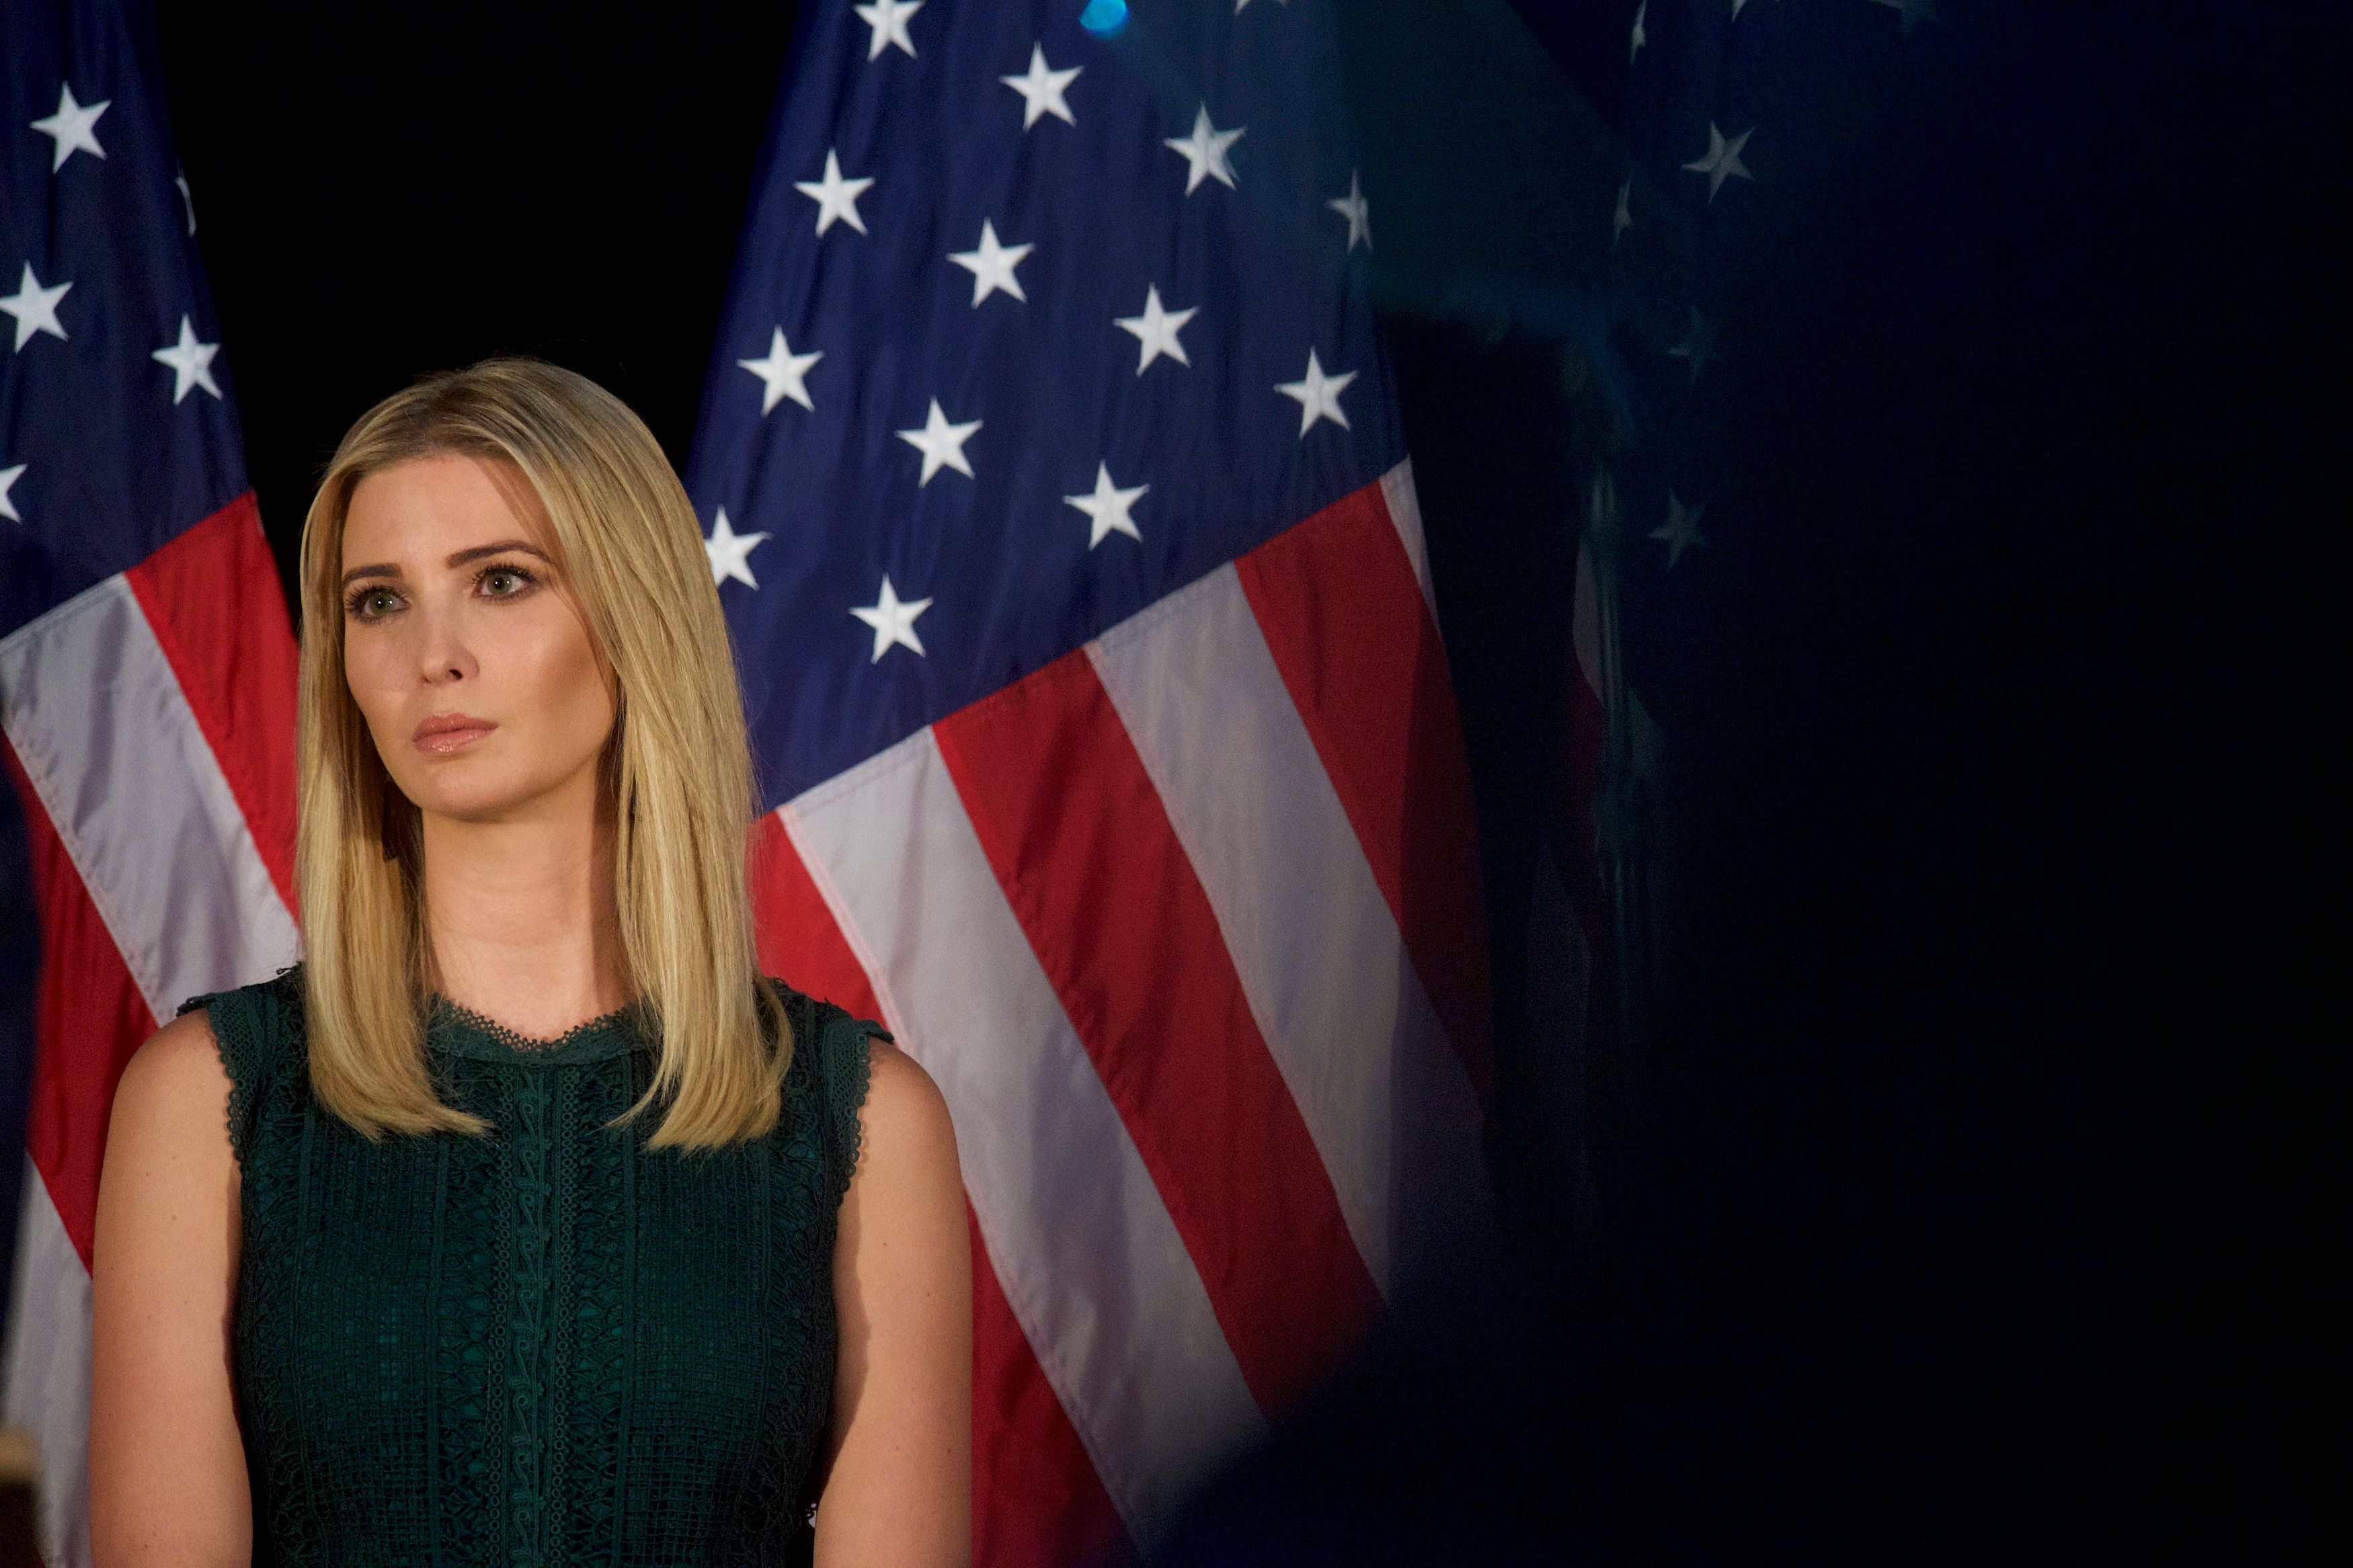 T.J. Maxx And Marshalls Tell Employees To Stop Featuring Ivanka Trump